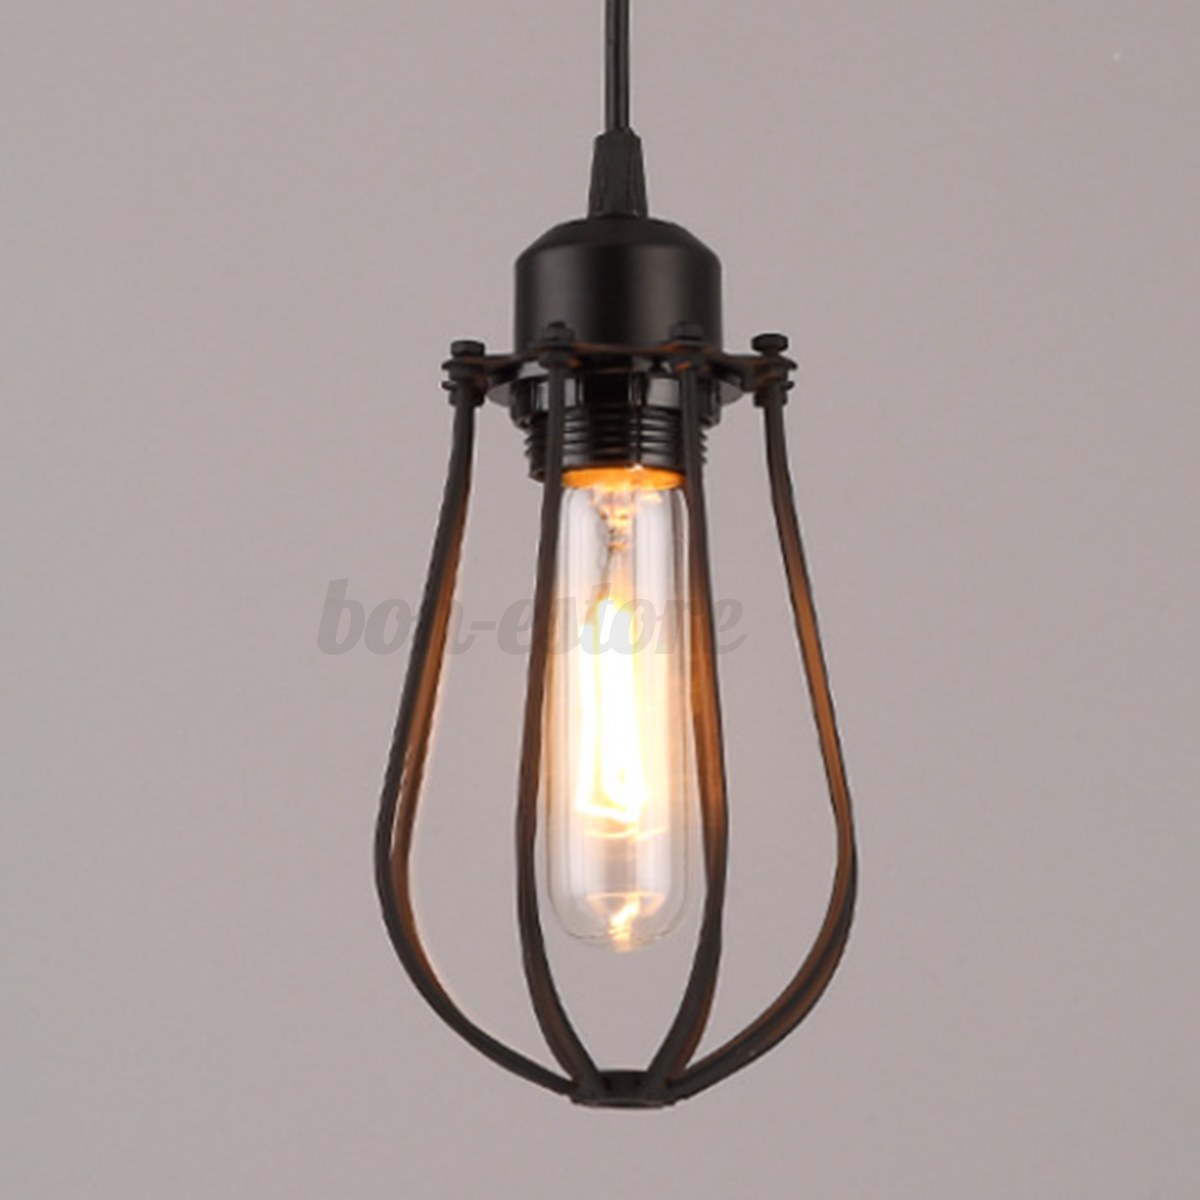 Iron vintage ceiling light fixtures industrial chandelier home iron vintage ceiling light fixtures industrial chandelier home mozeypictures Image collections